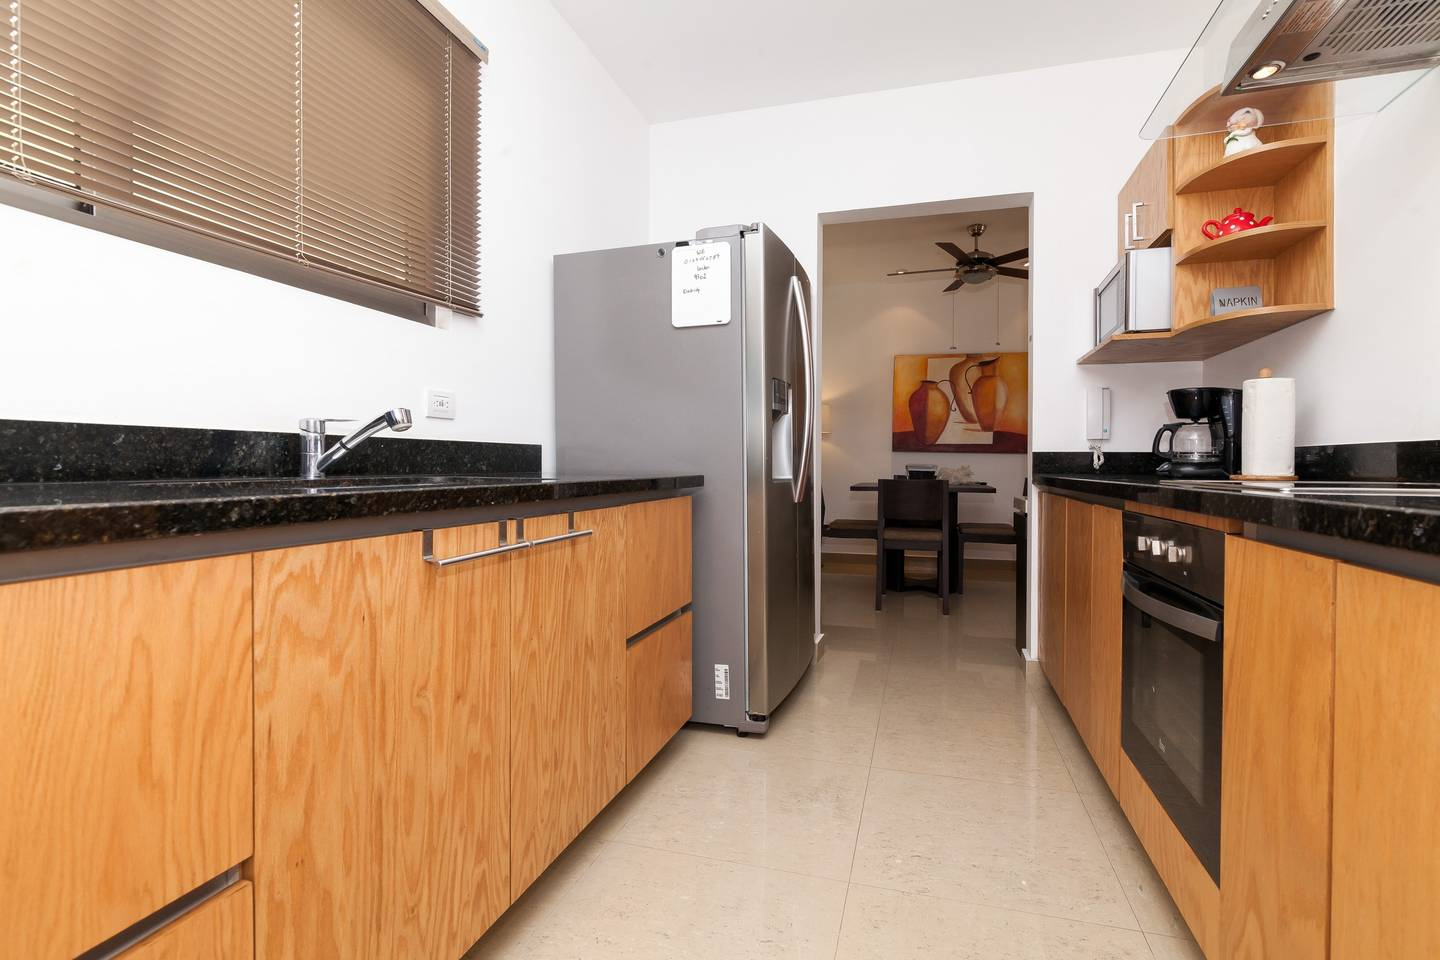 Condo with private terrace and amazing rooftop photo 5775630